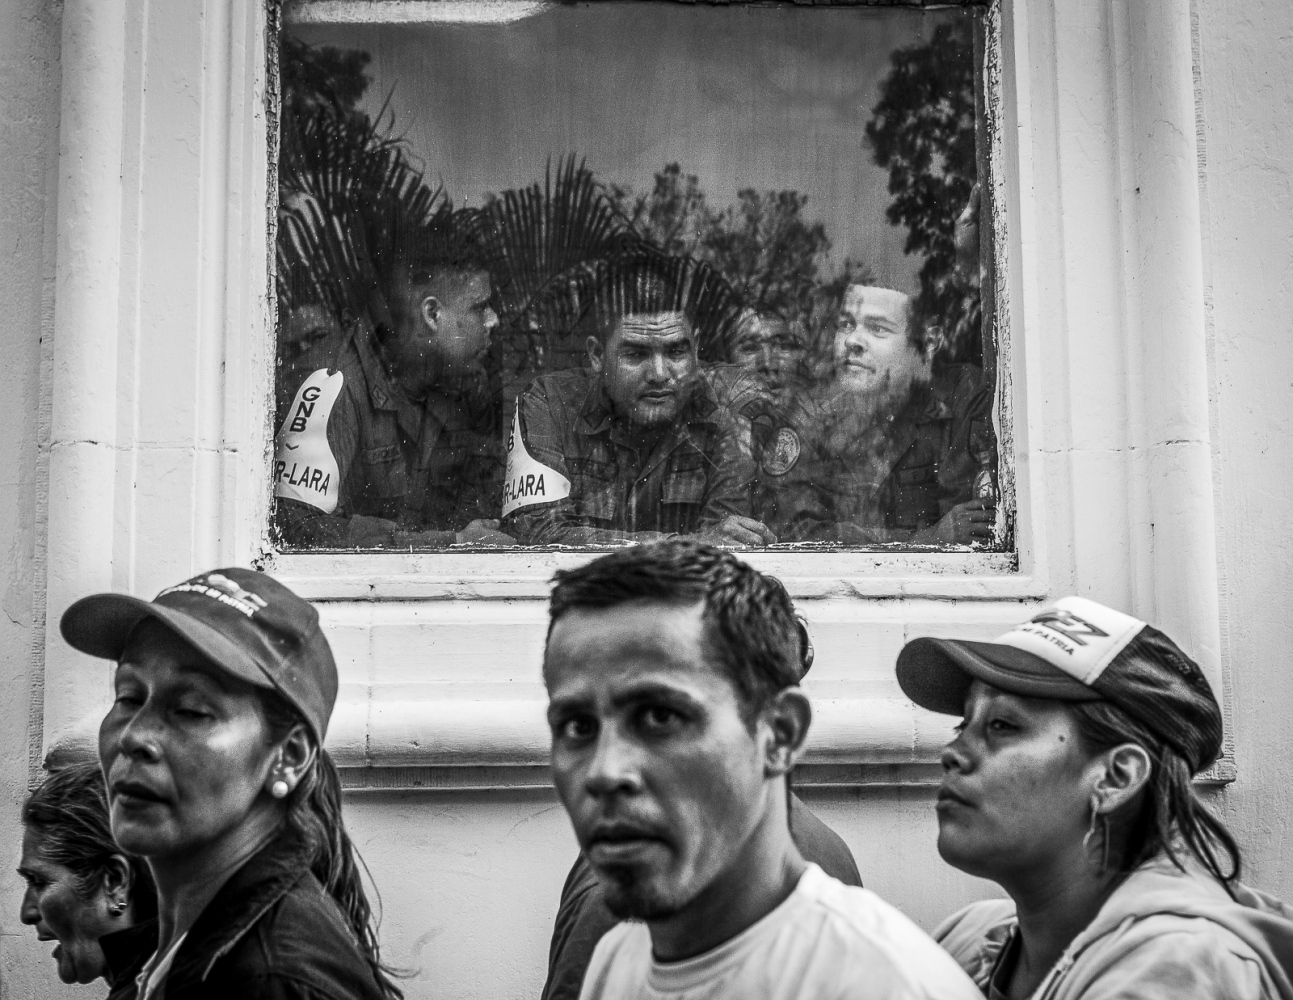 Members of the Bolivarian National Guard look through the window in the Military Academy, to the people outside queuing to see the remains of Venezuela's President, Hugo Chávez, during the funeral in Caracas, 8th March 2013